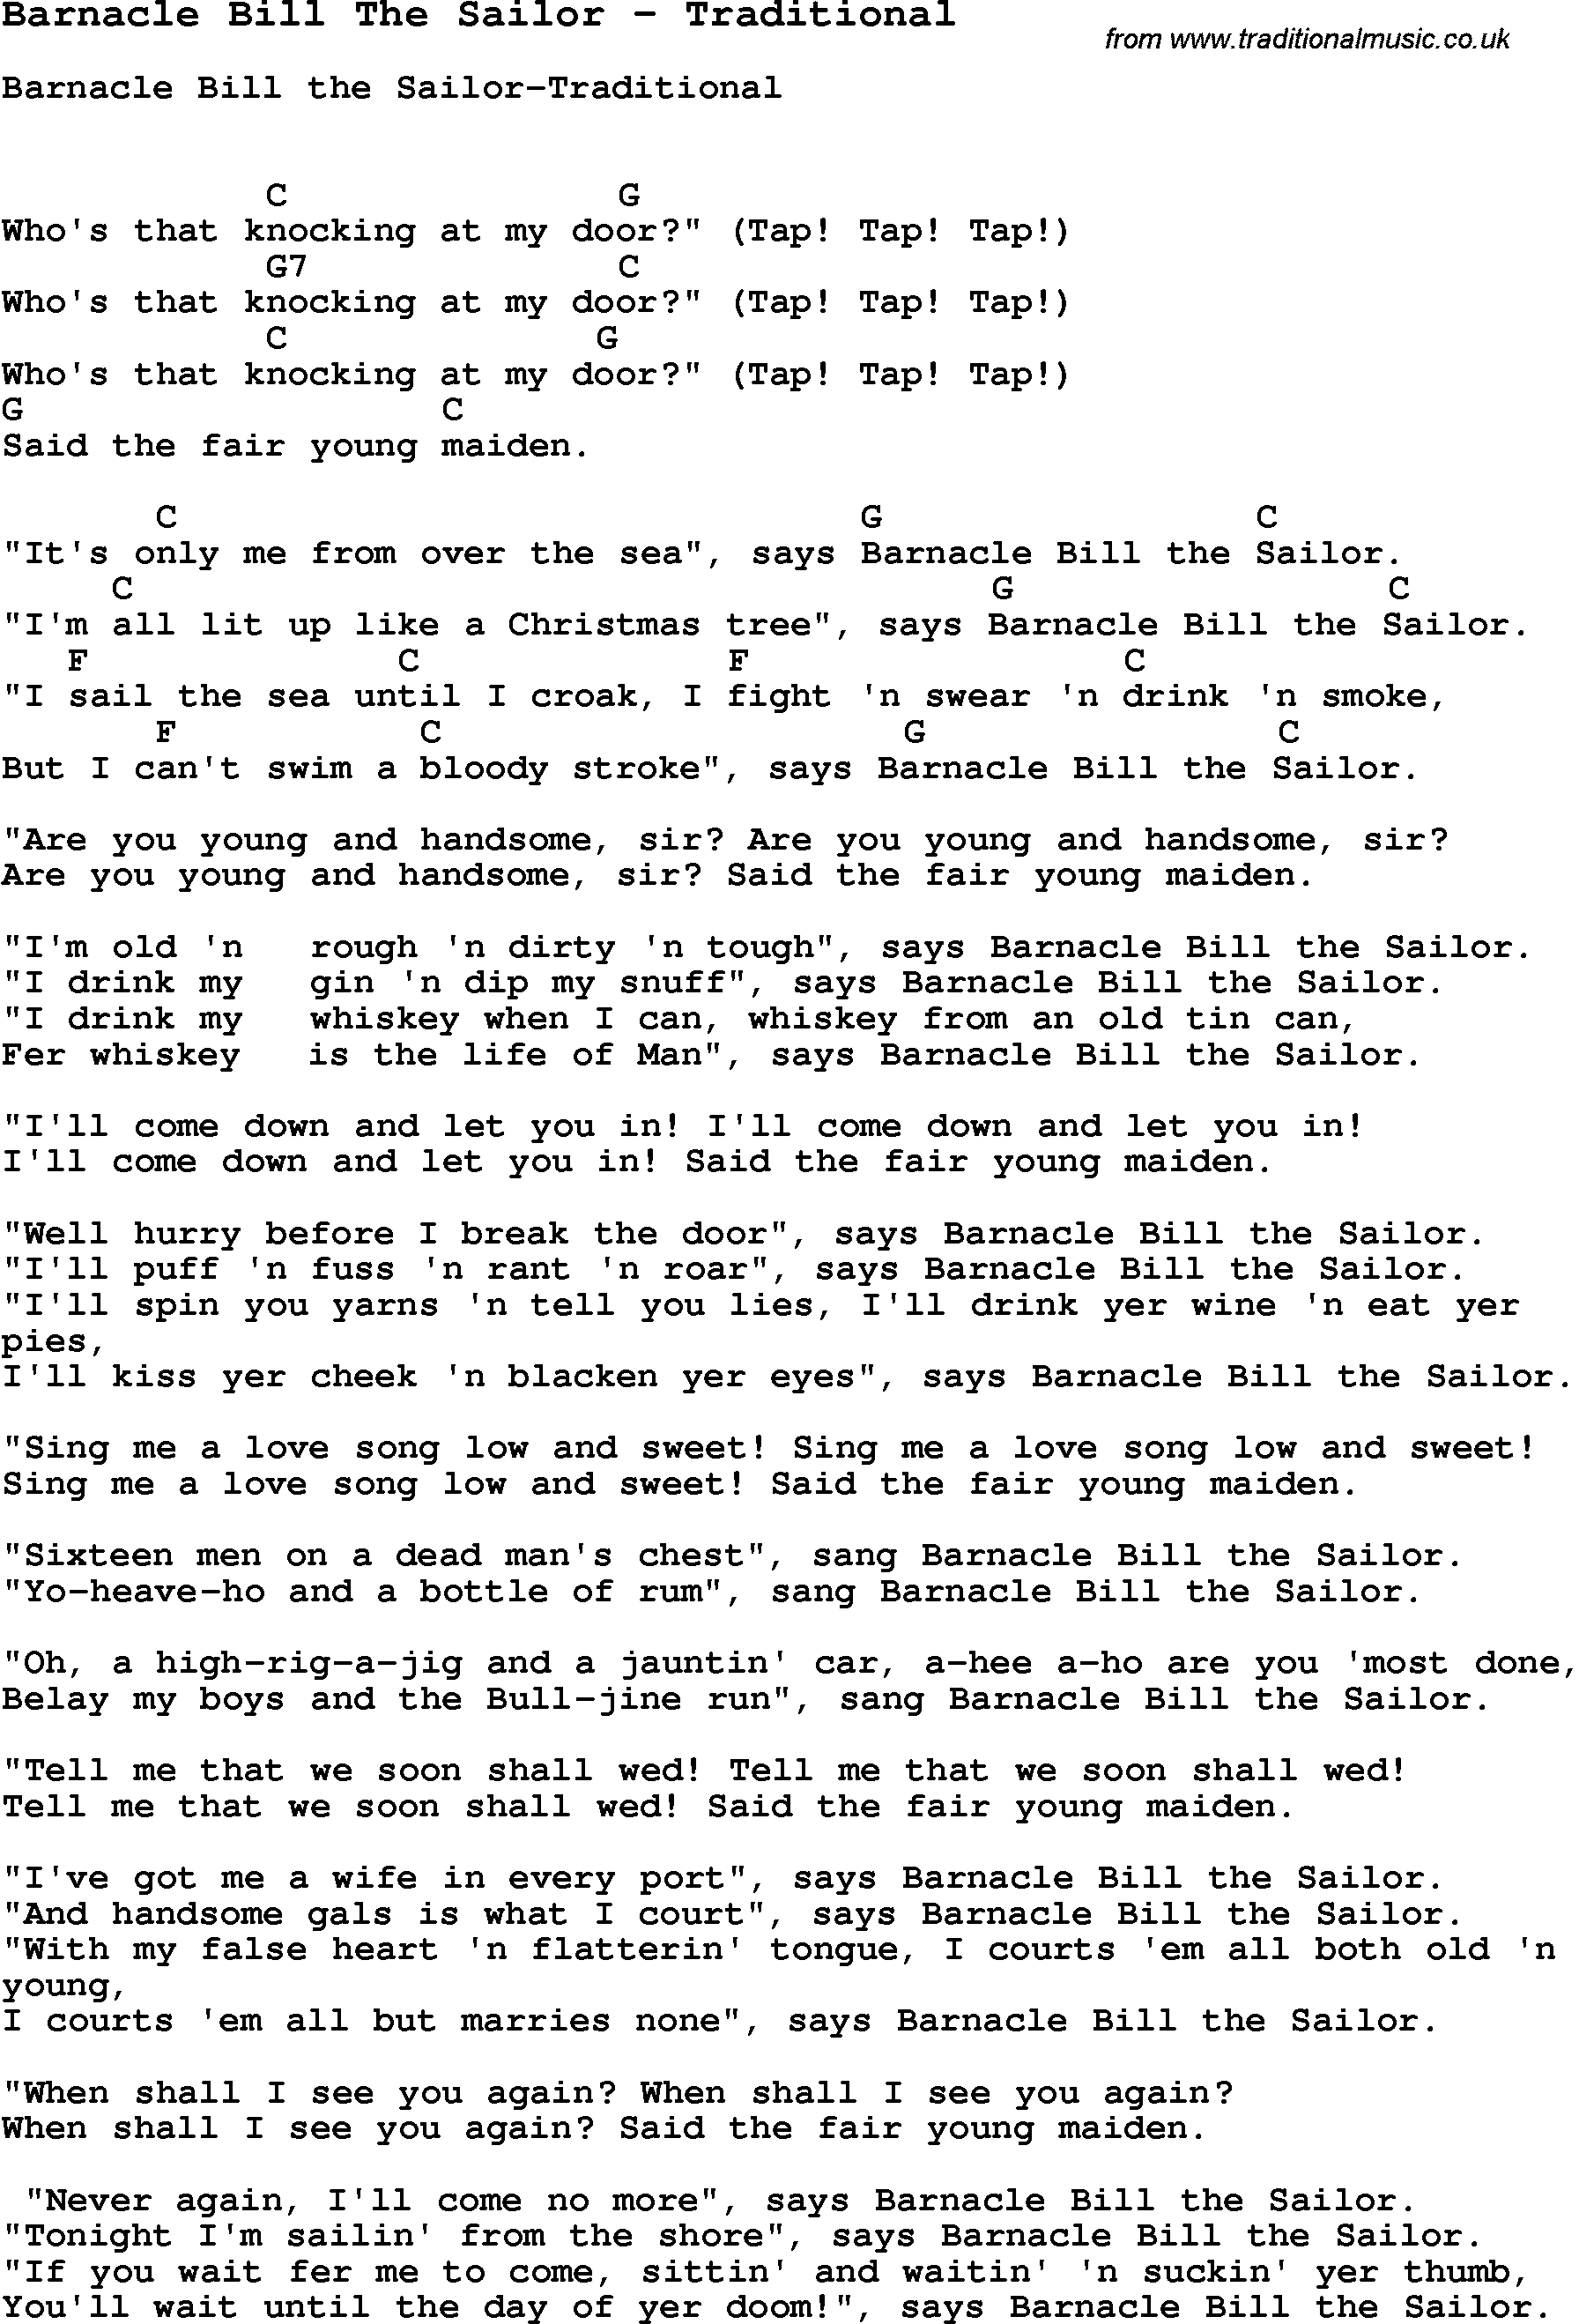 Song barnacle bill the sailor by traditional song lyric for vocal song barnacle bill the sailor by traditional with lyrics for vocal performance and accompaniment chords hexwebz Images